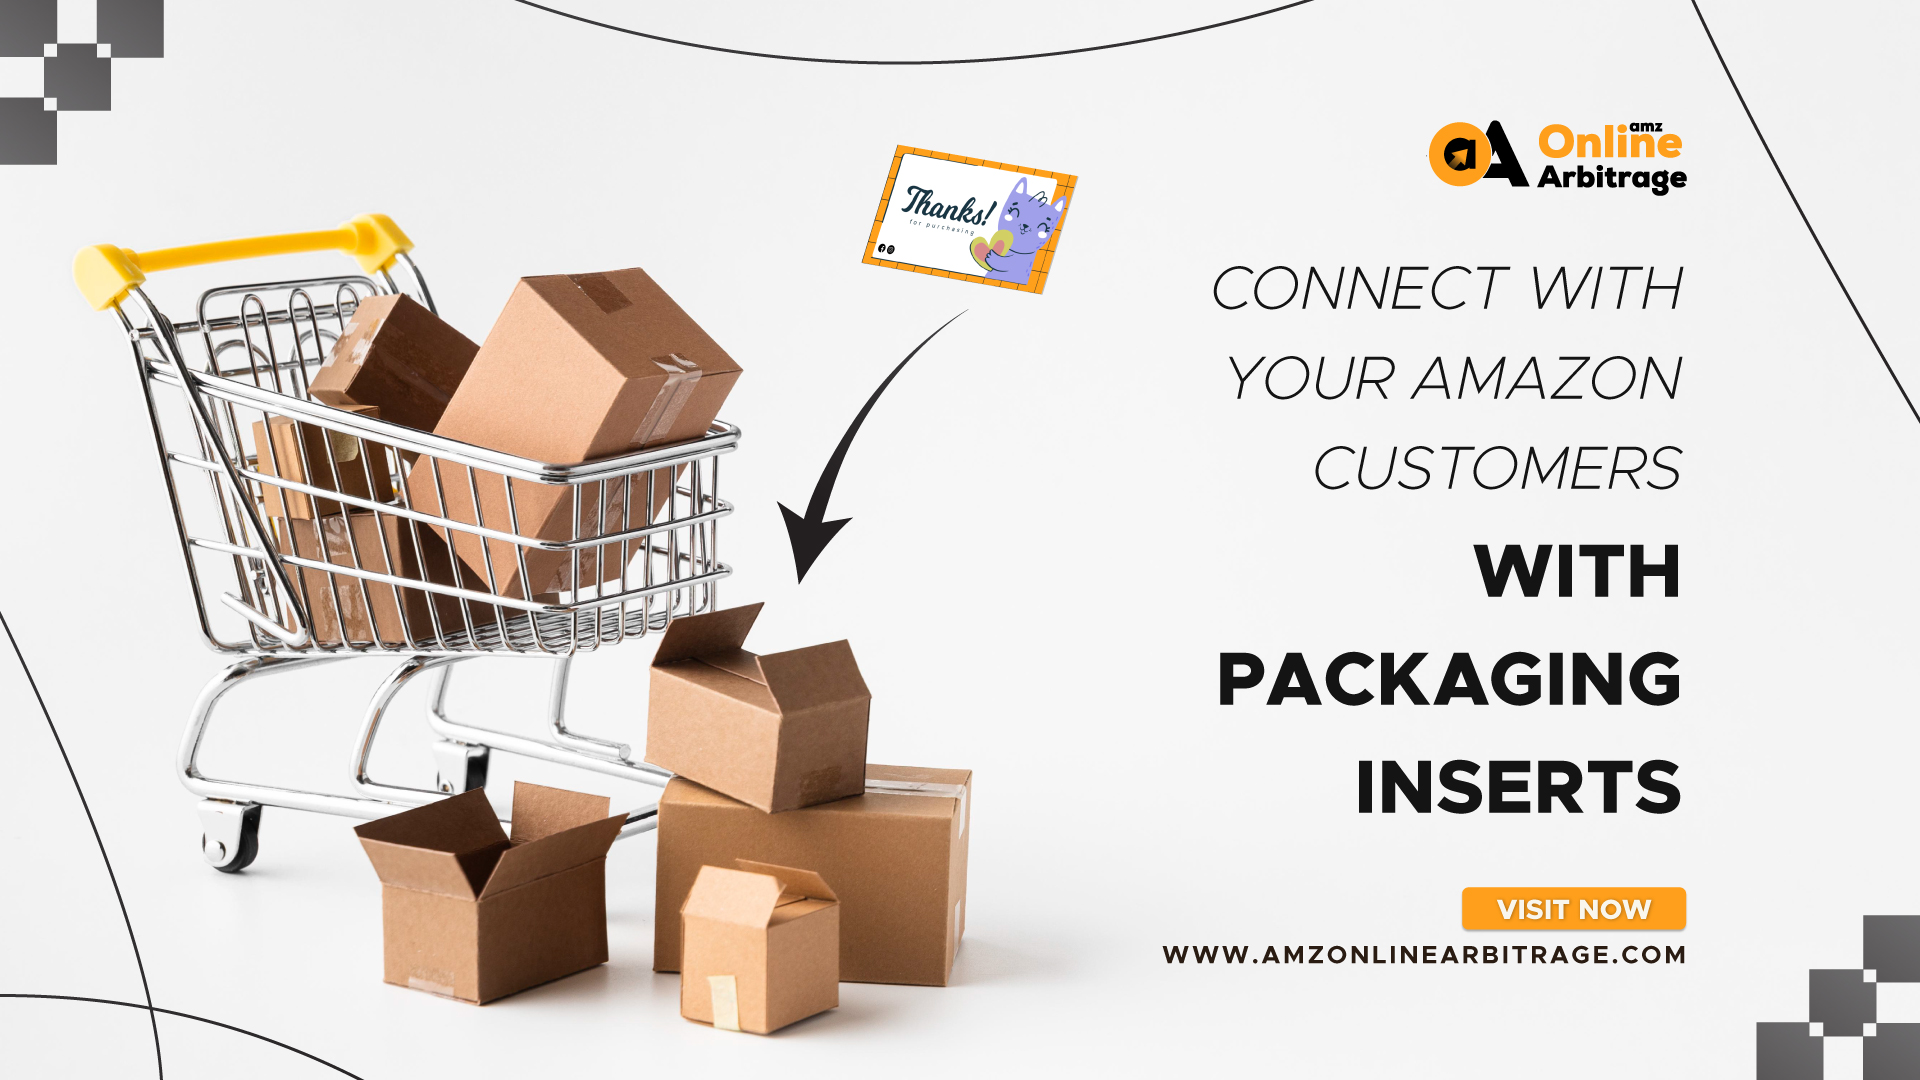 CONNECT WITH YOUR AMAZON CUSTOMERS WITH PACKAGING INSERTS